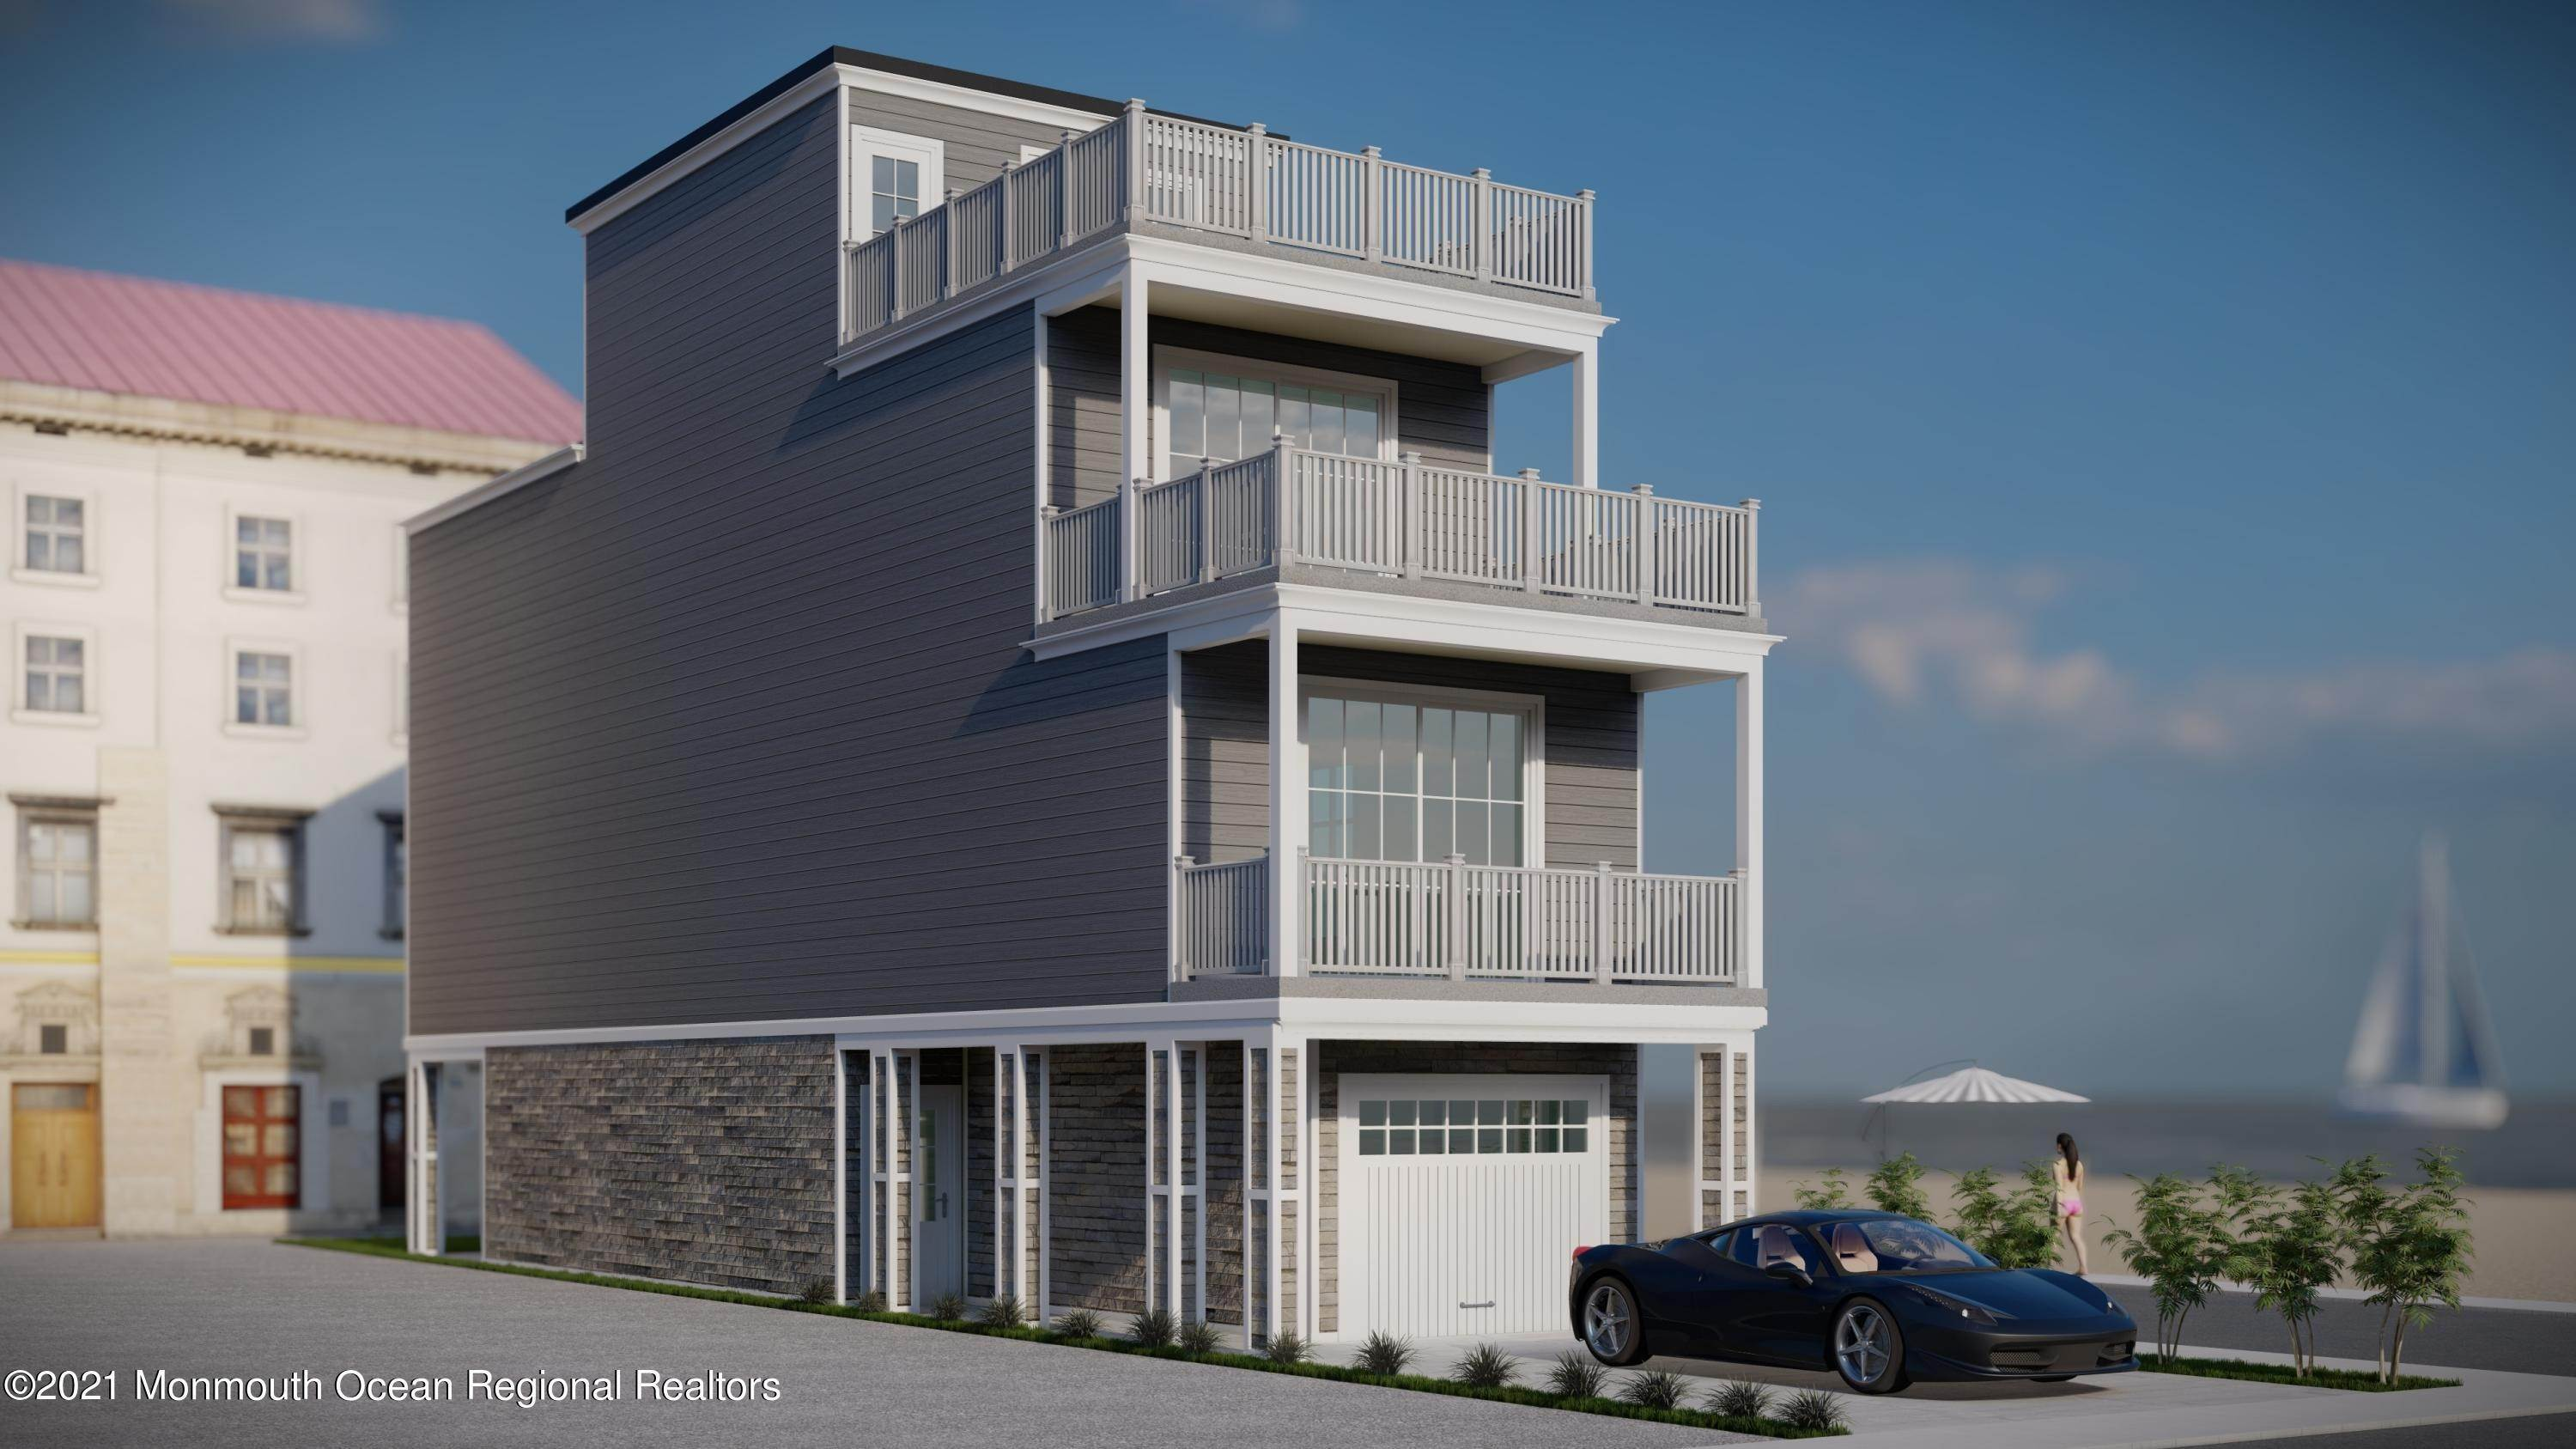 Property for Sale at 30 Webster Avenue Seaside Heights, New Jersey 08751 United States